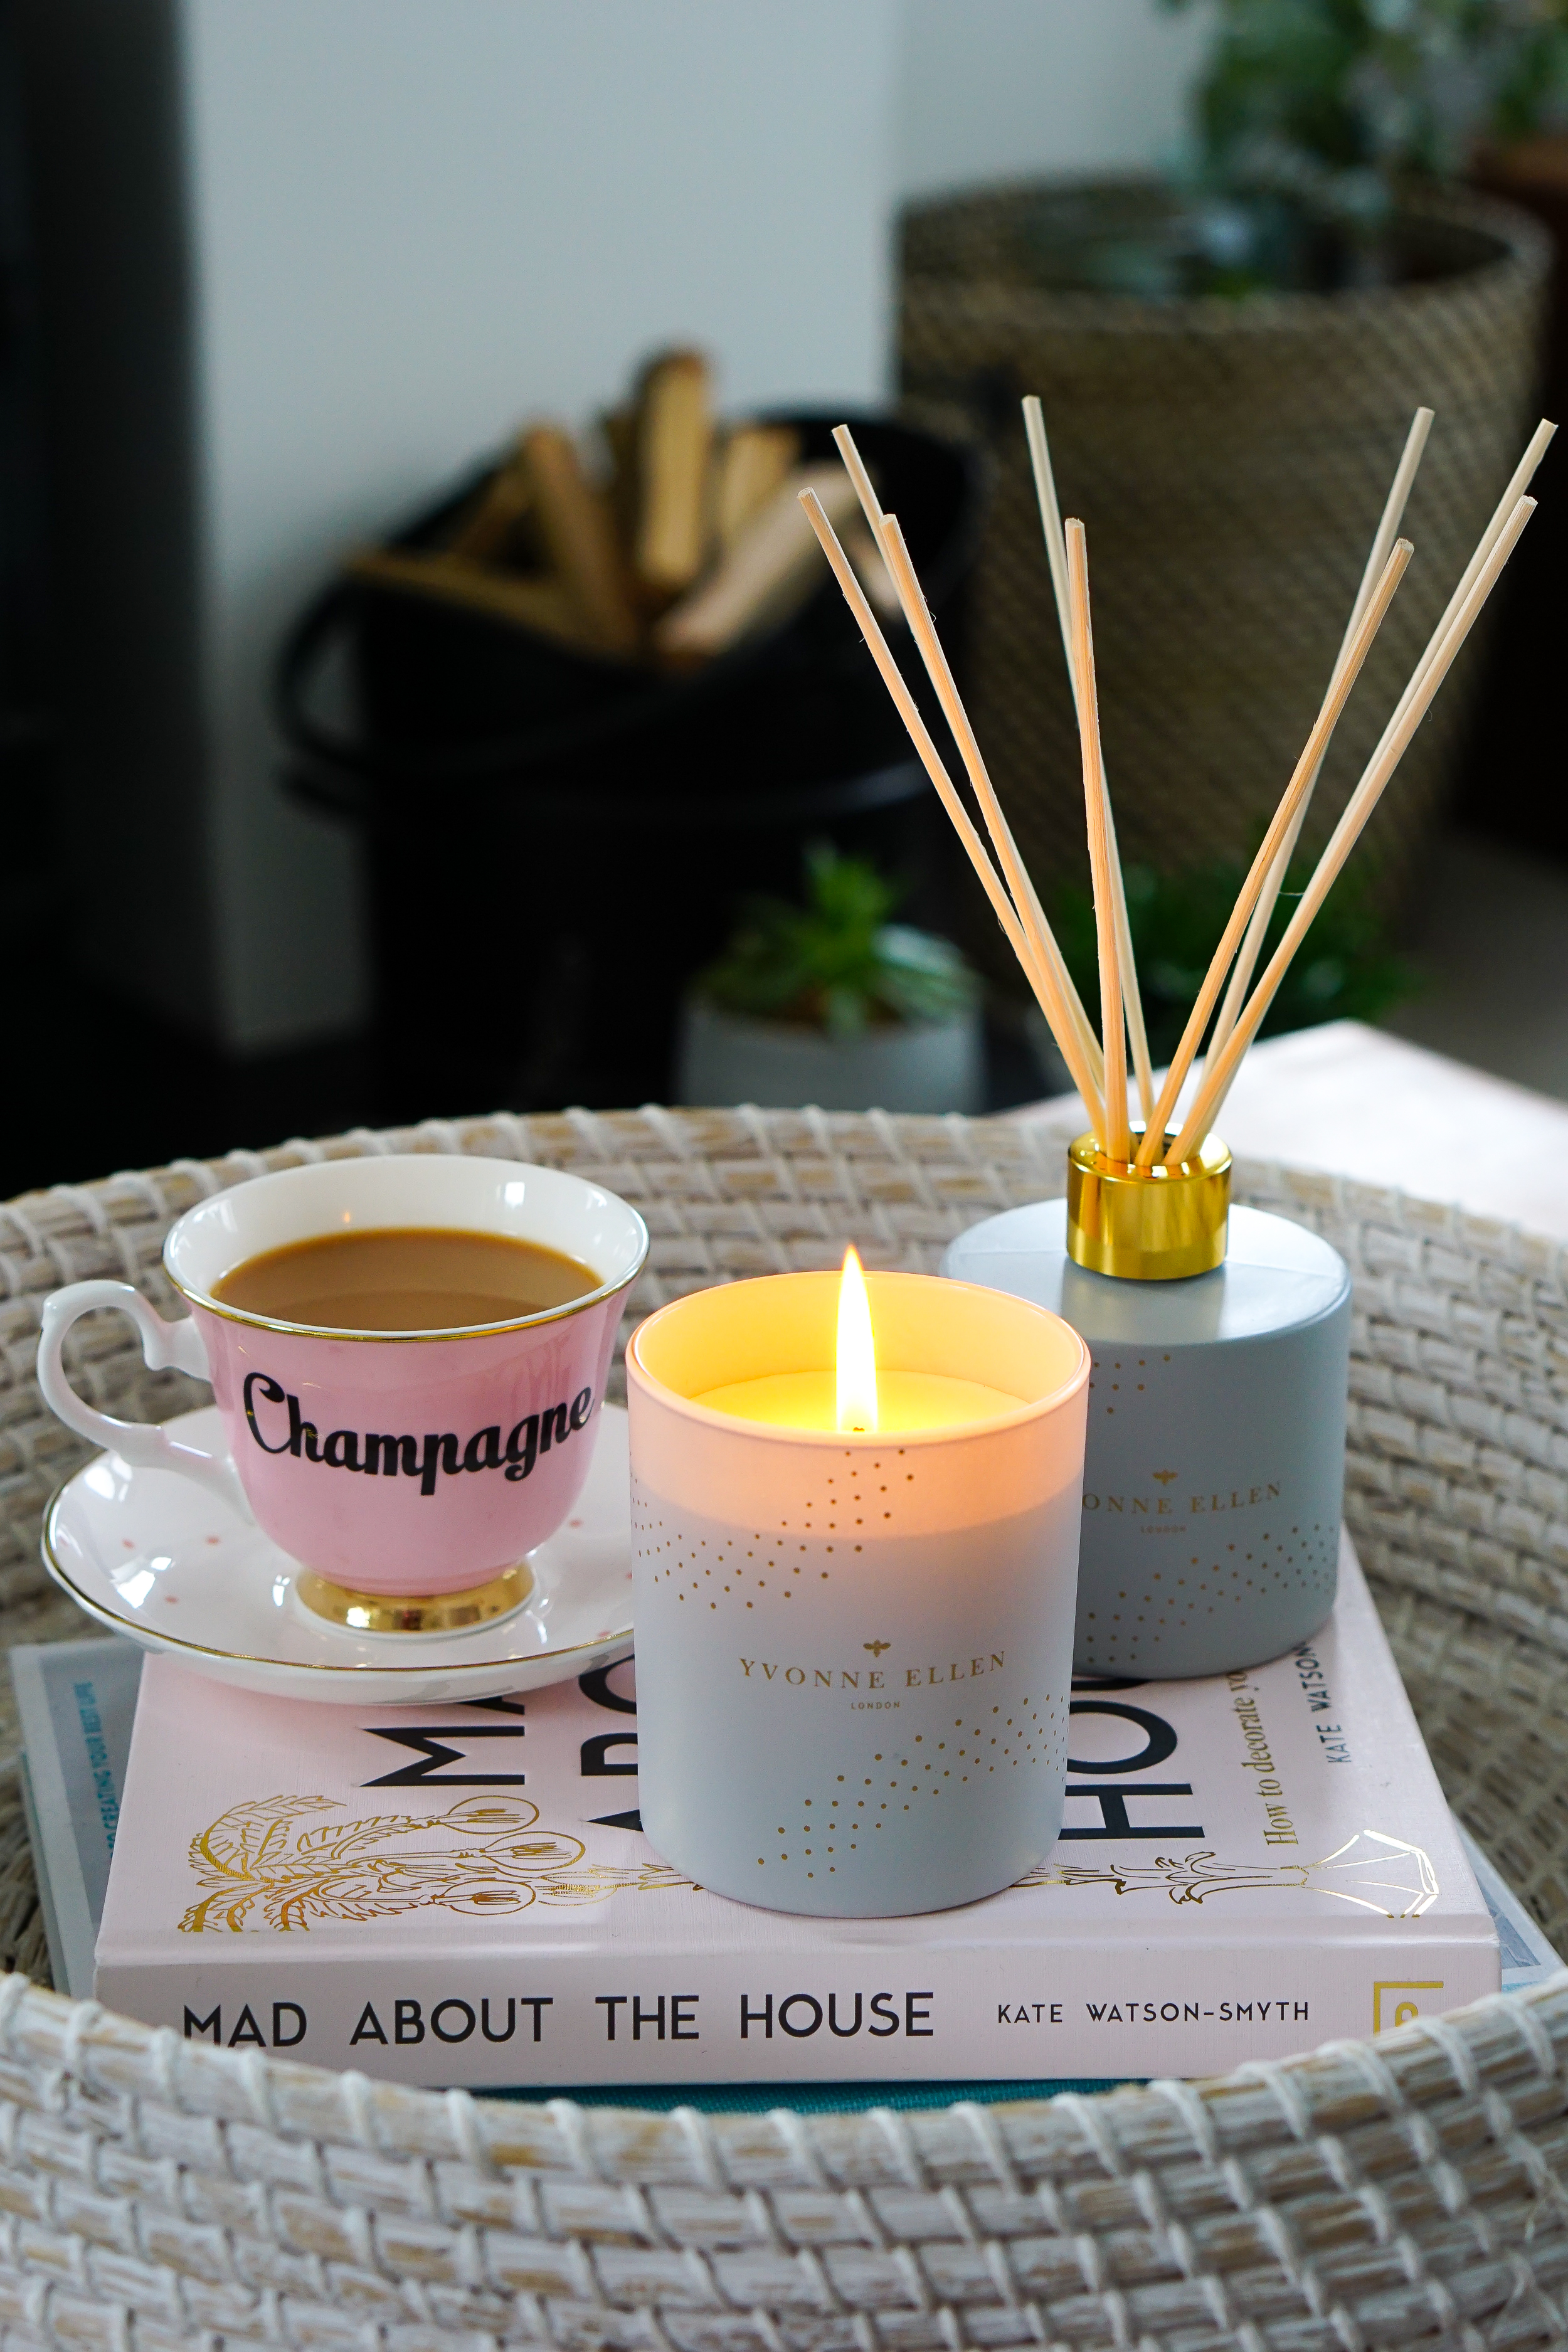 Wax Lyrical Yvonne Ellen home fragrance collection